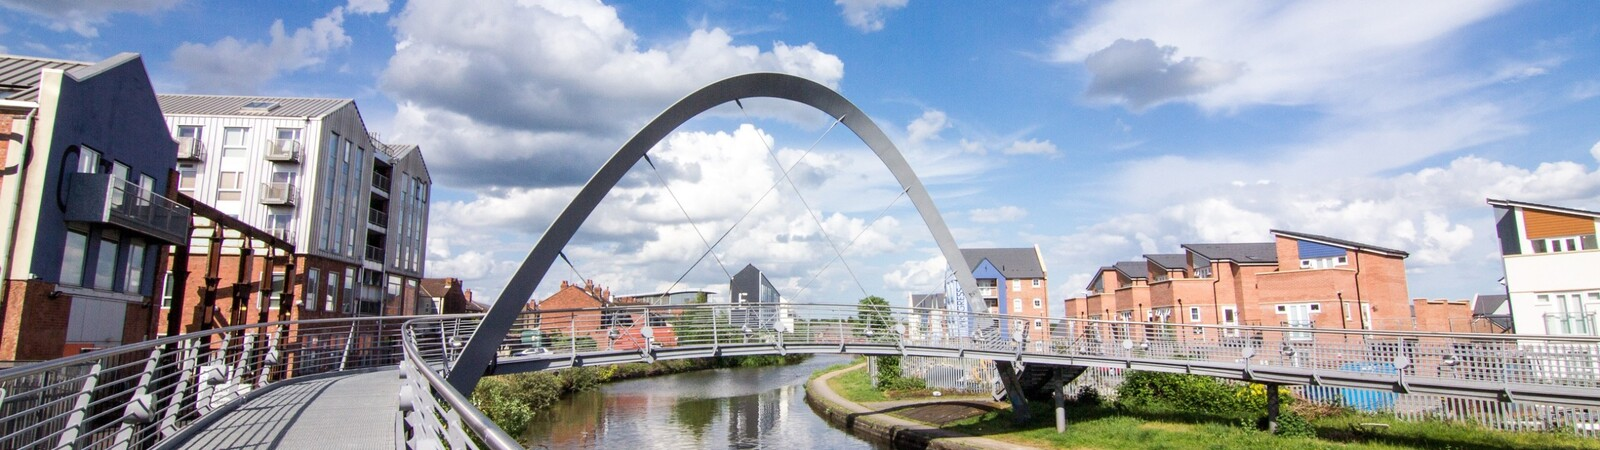 Electric Wharf in Coventry